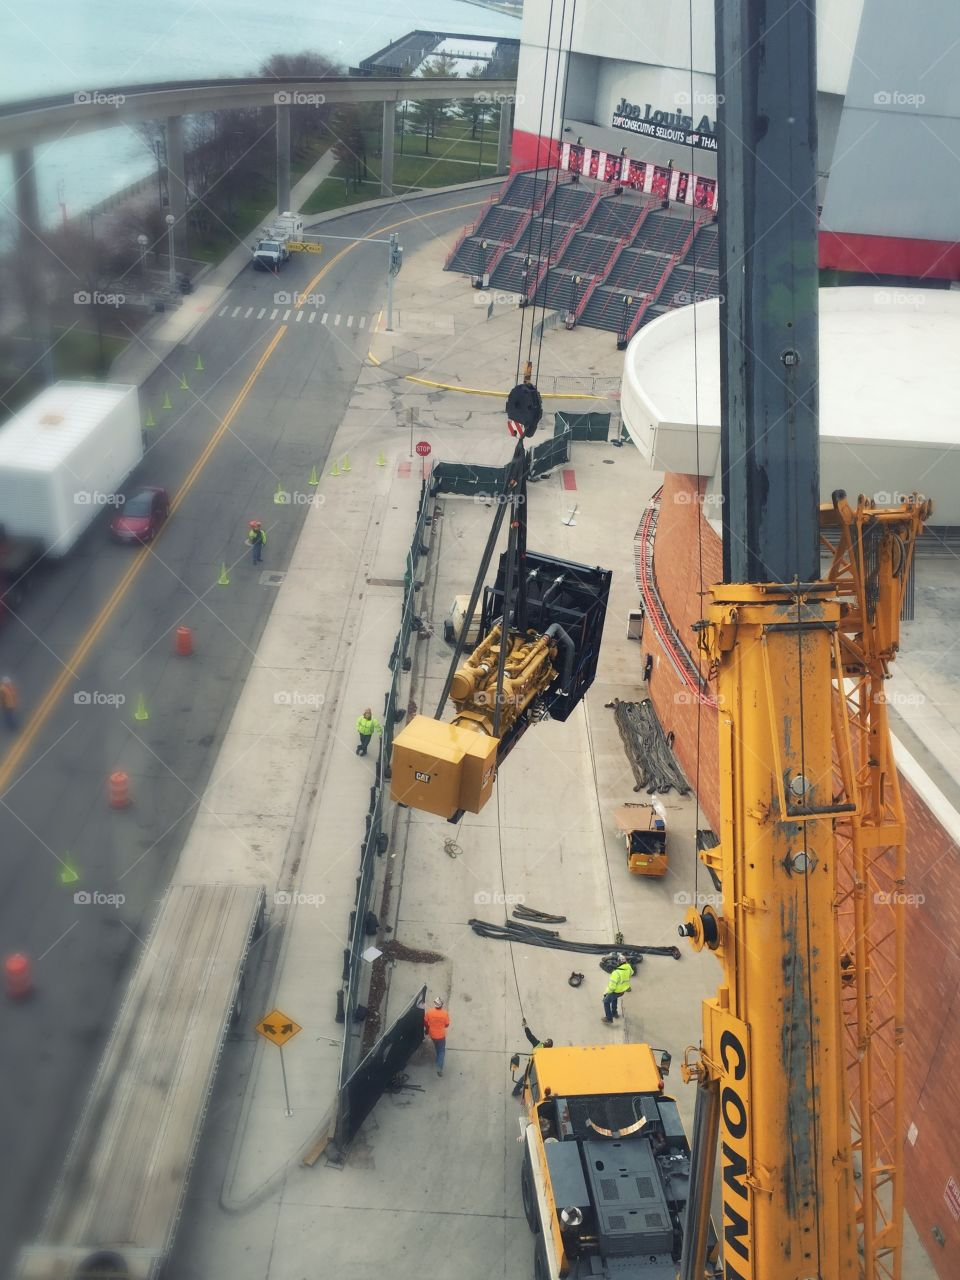 Construction site in Detroit! Moving a generator onto the roof of a building.